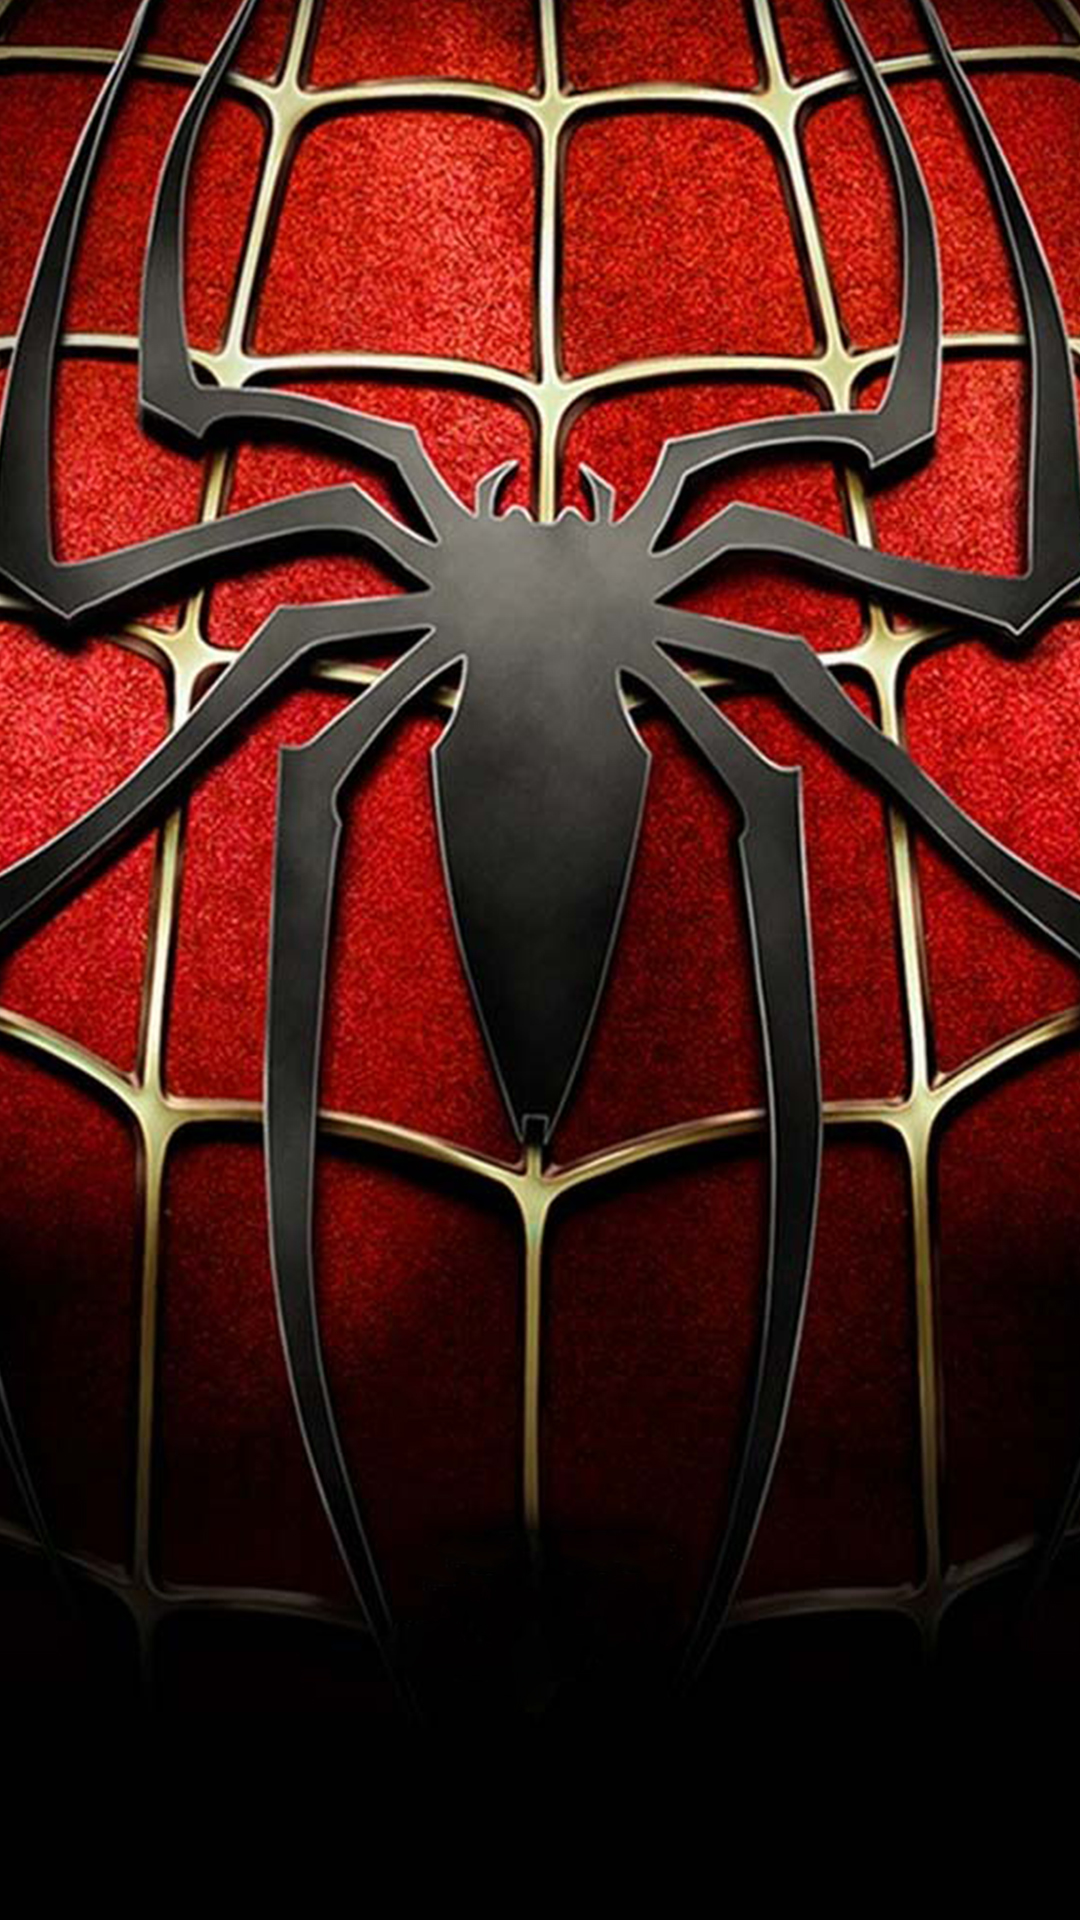 Download Spiderman Suit Phone Wallpaper